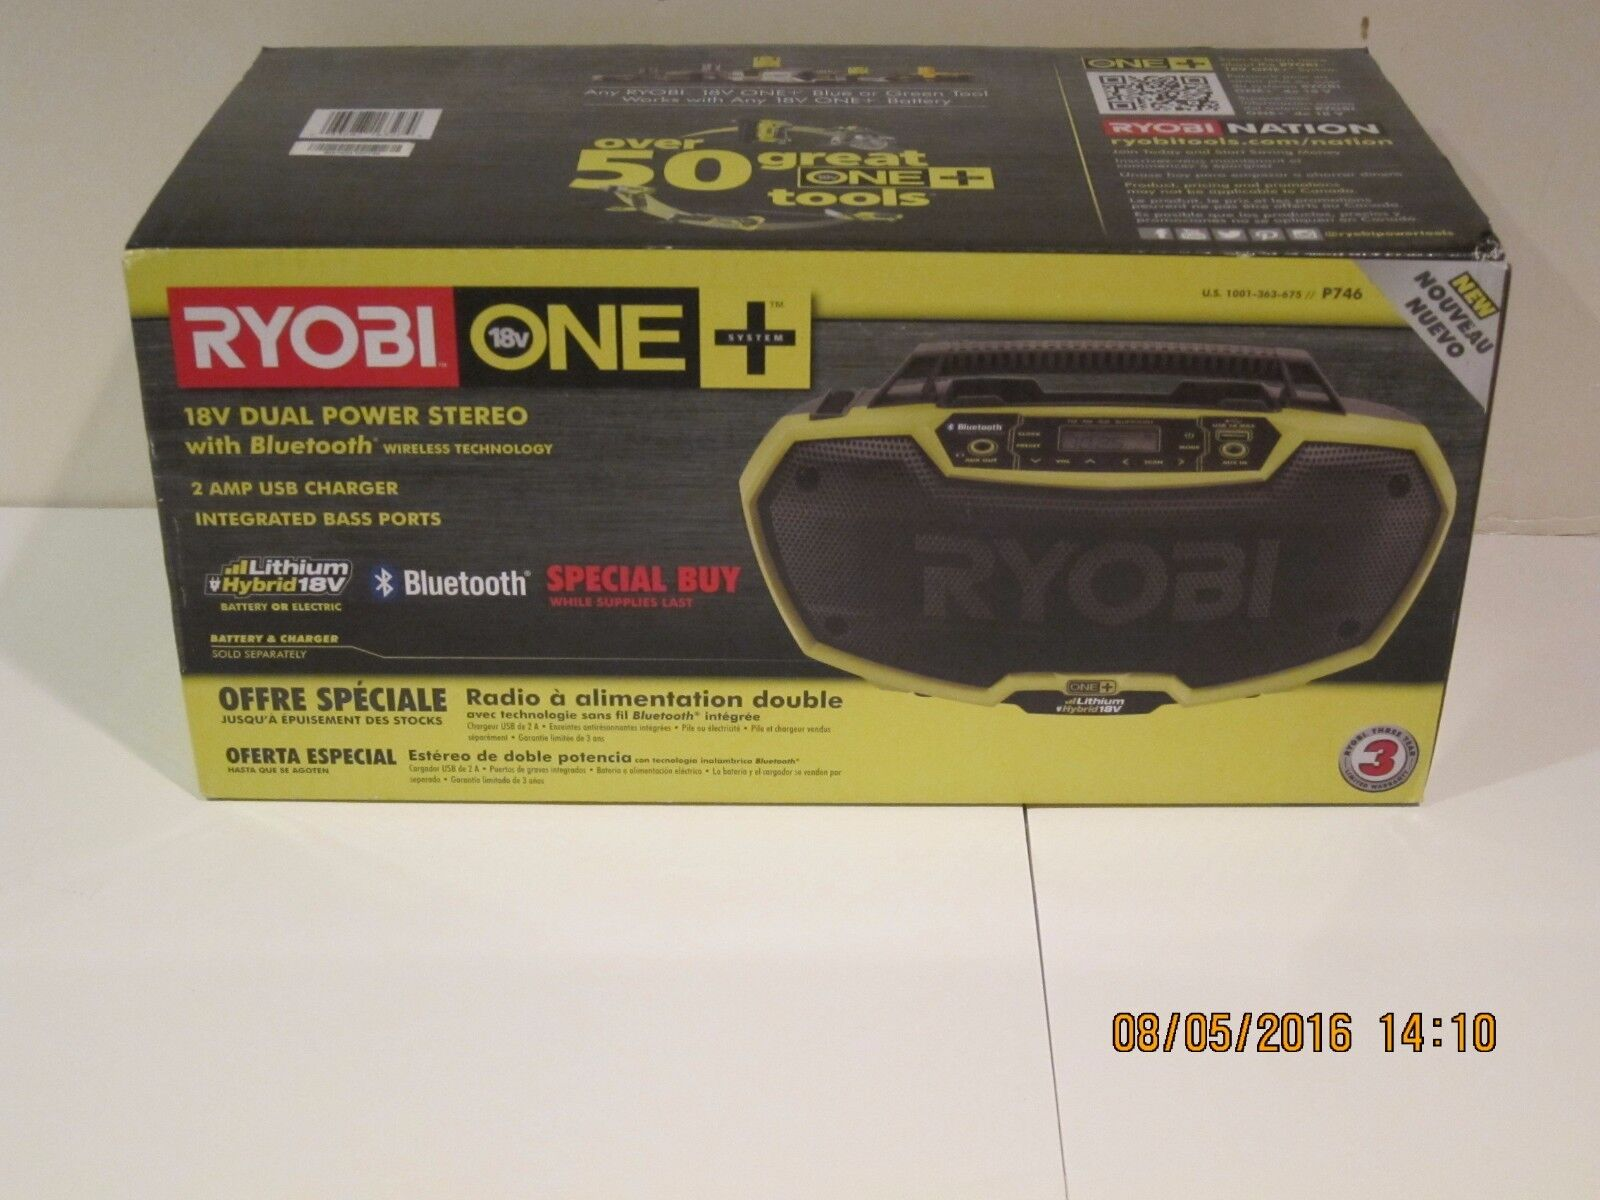 Ryobi P746 ONE 18-Volt Dual Power Stereo with Bluetooth Wire